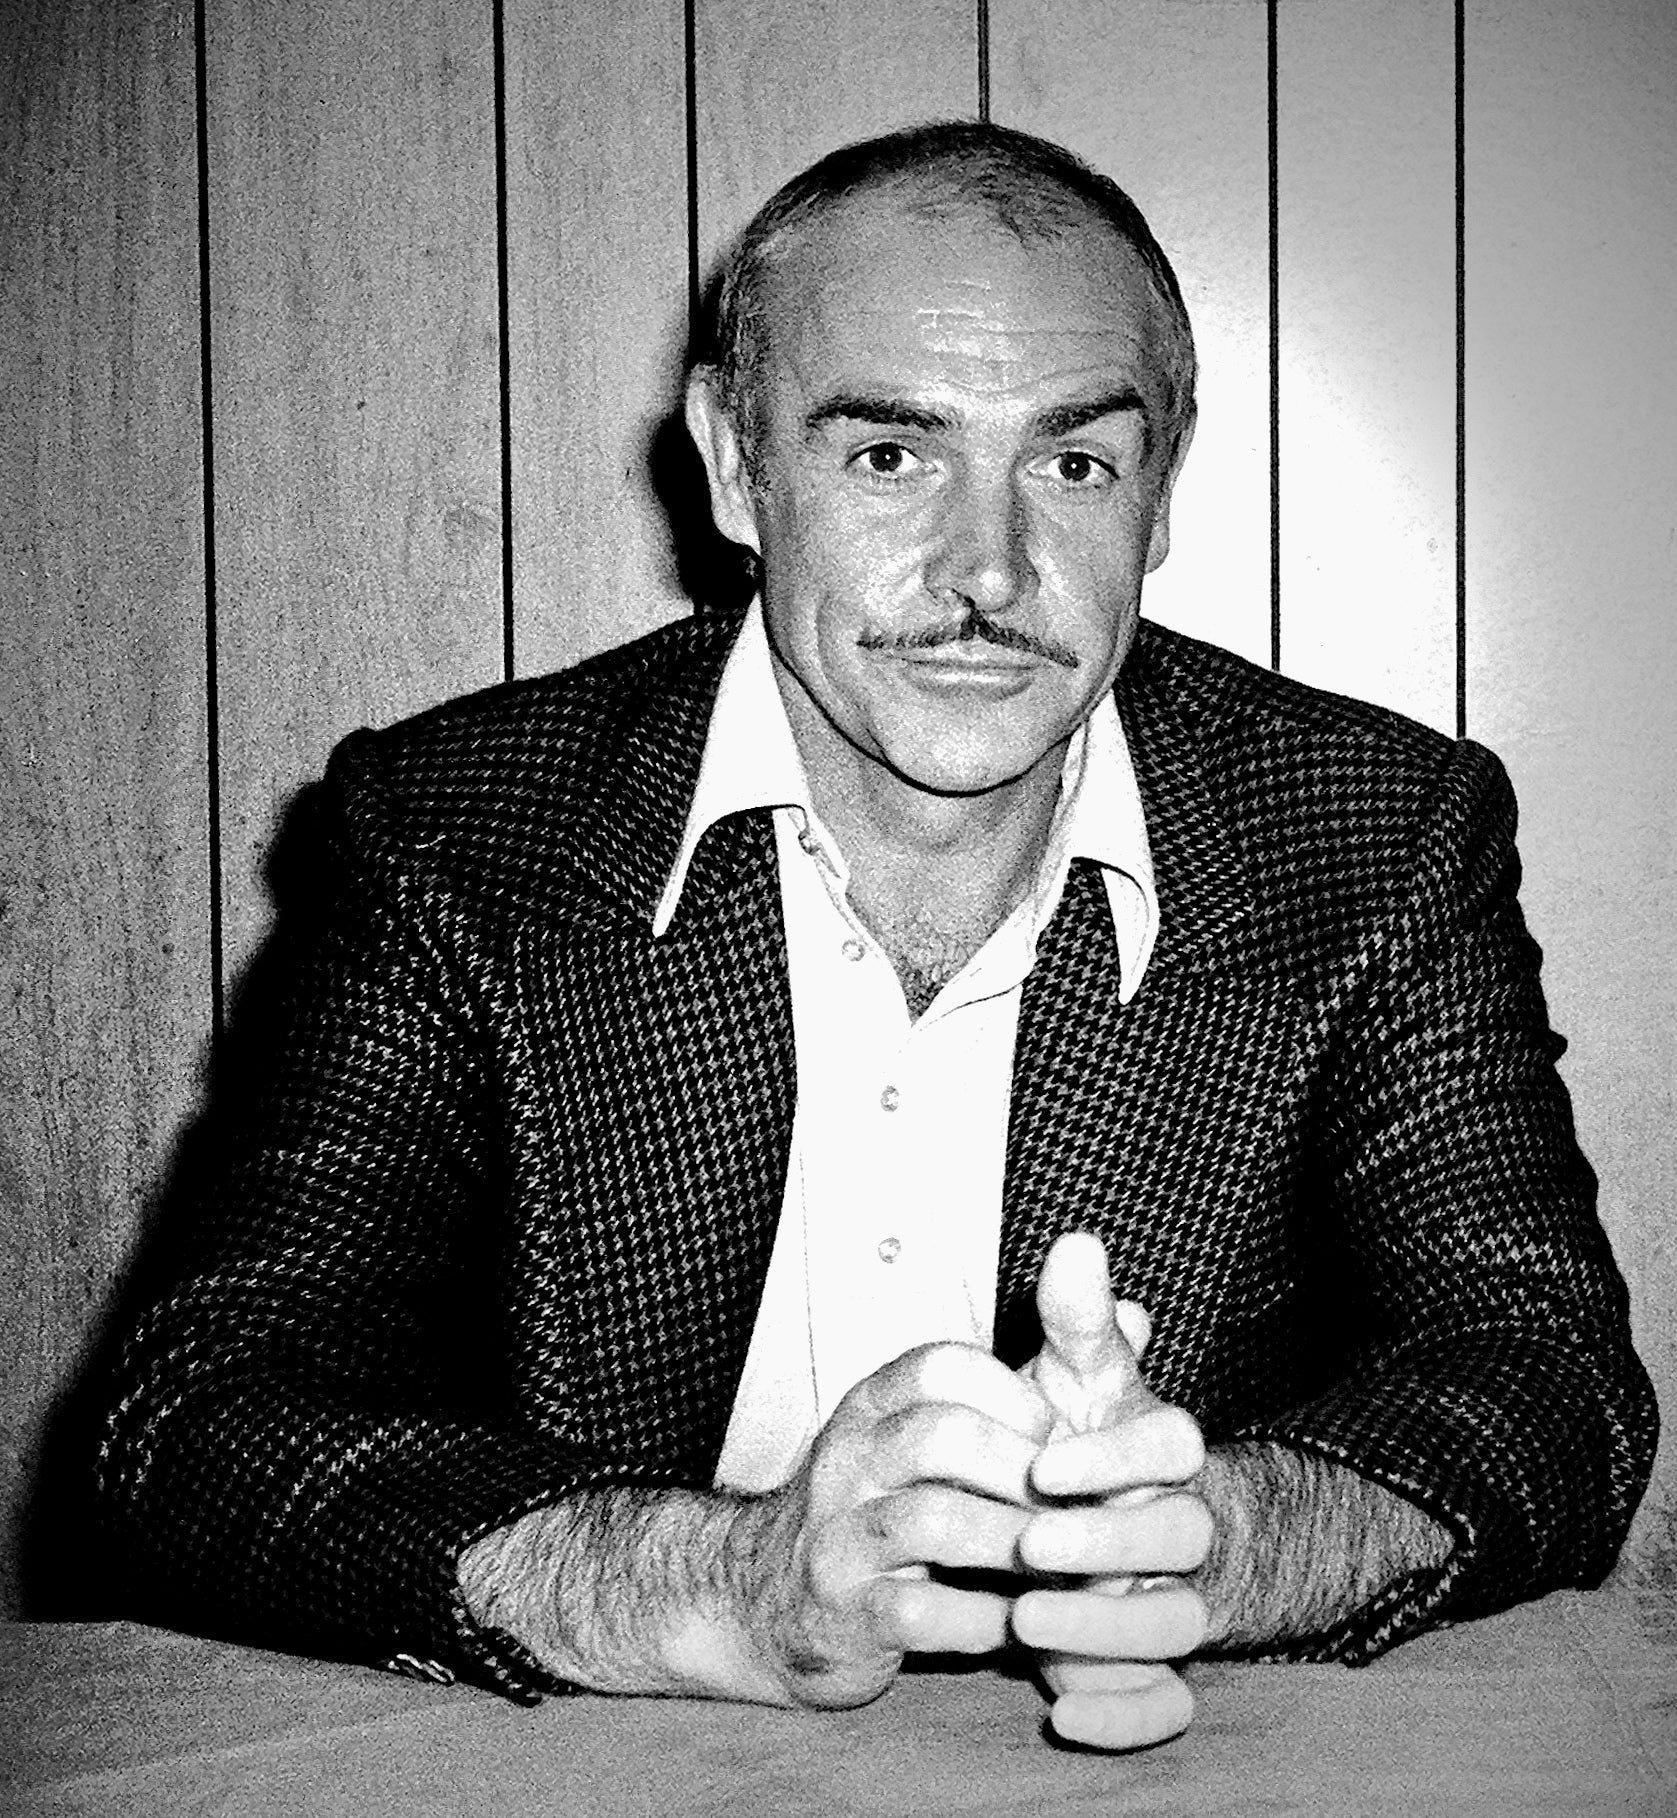 Sean Connery, Golden Globe winner and Cecil B.deMille recipient, in 1976